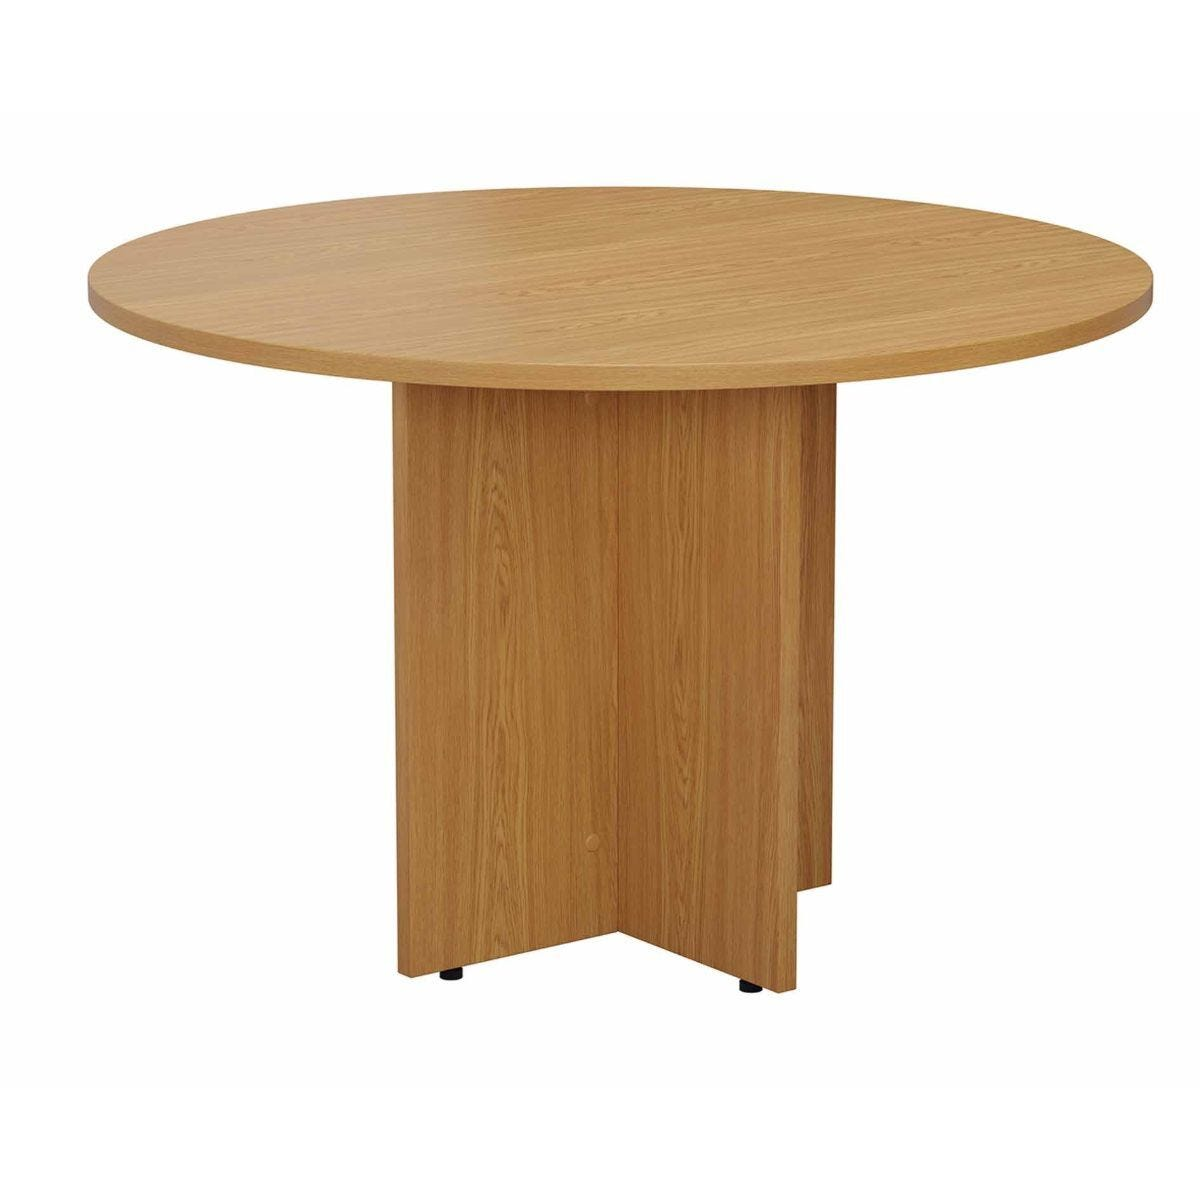 TC Office Round Meeting Table 1100mm Oak